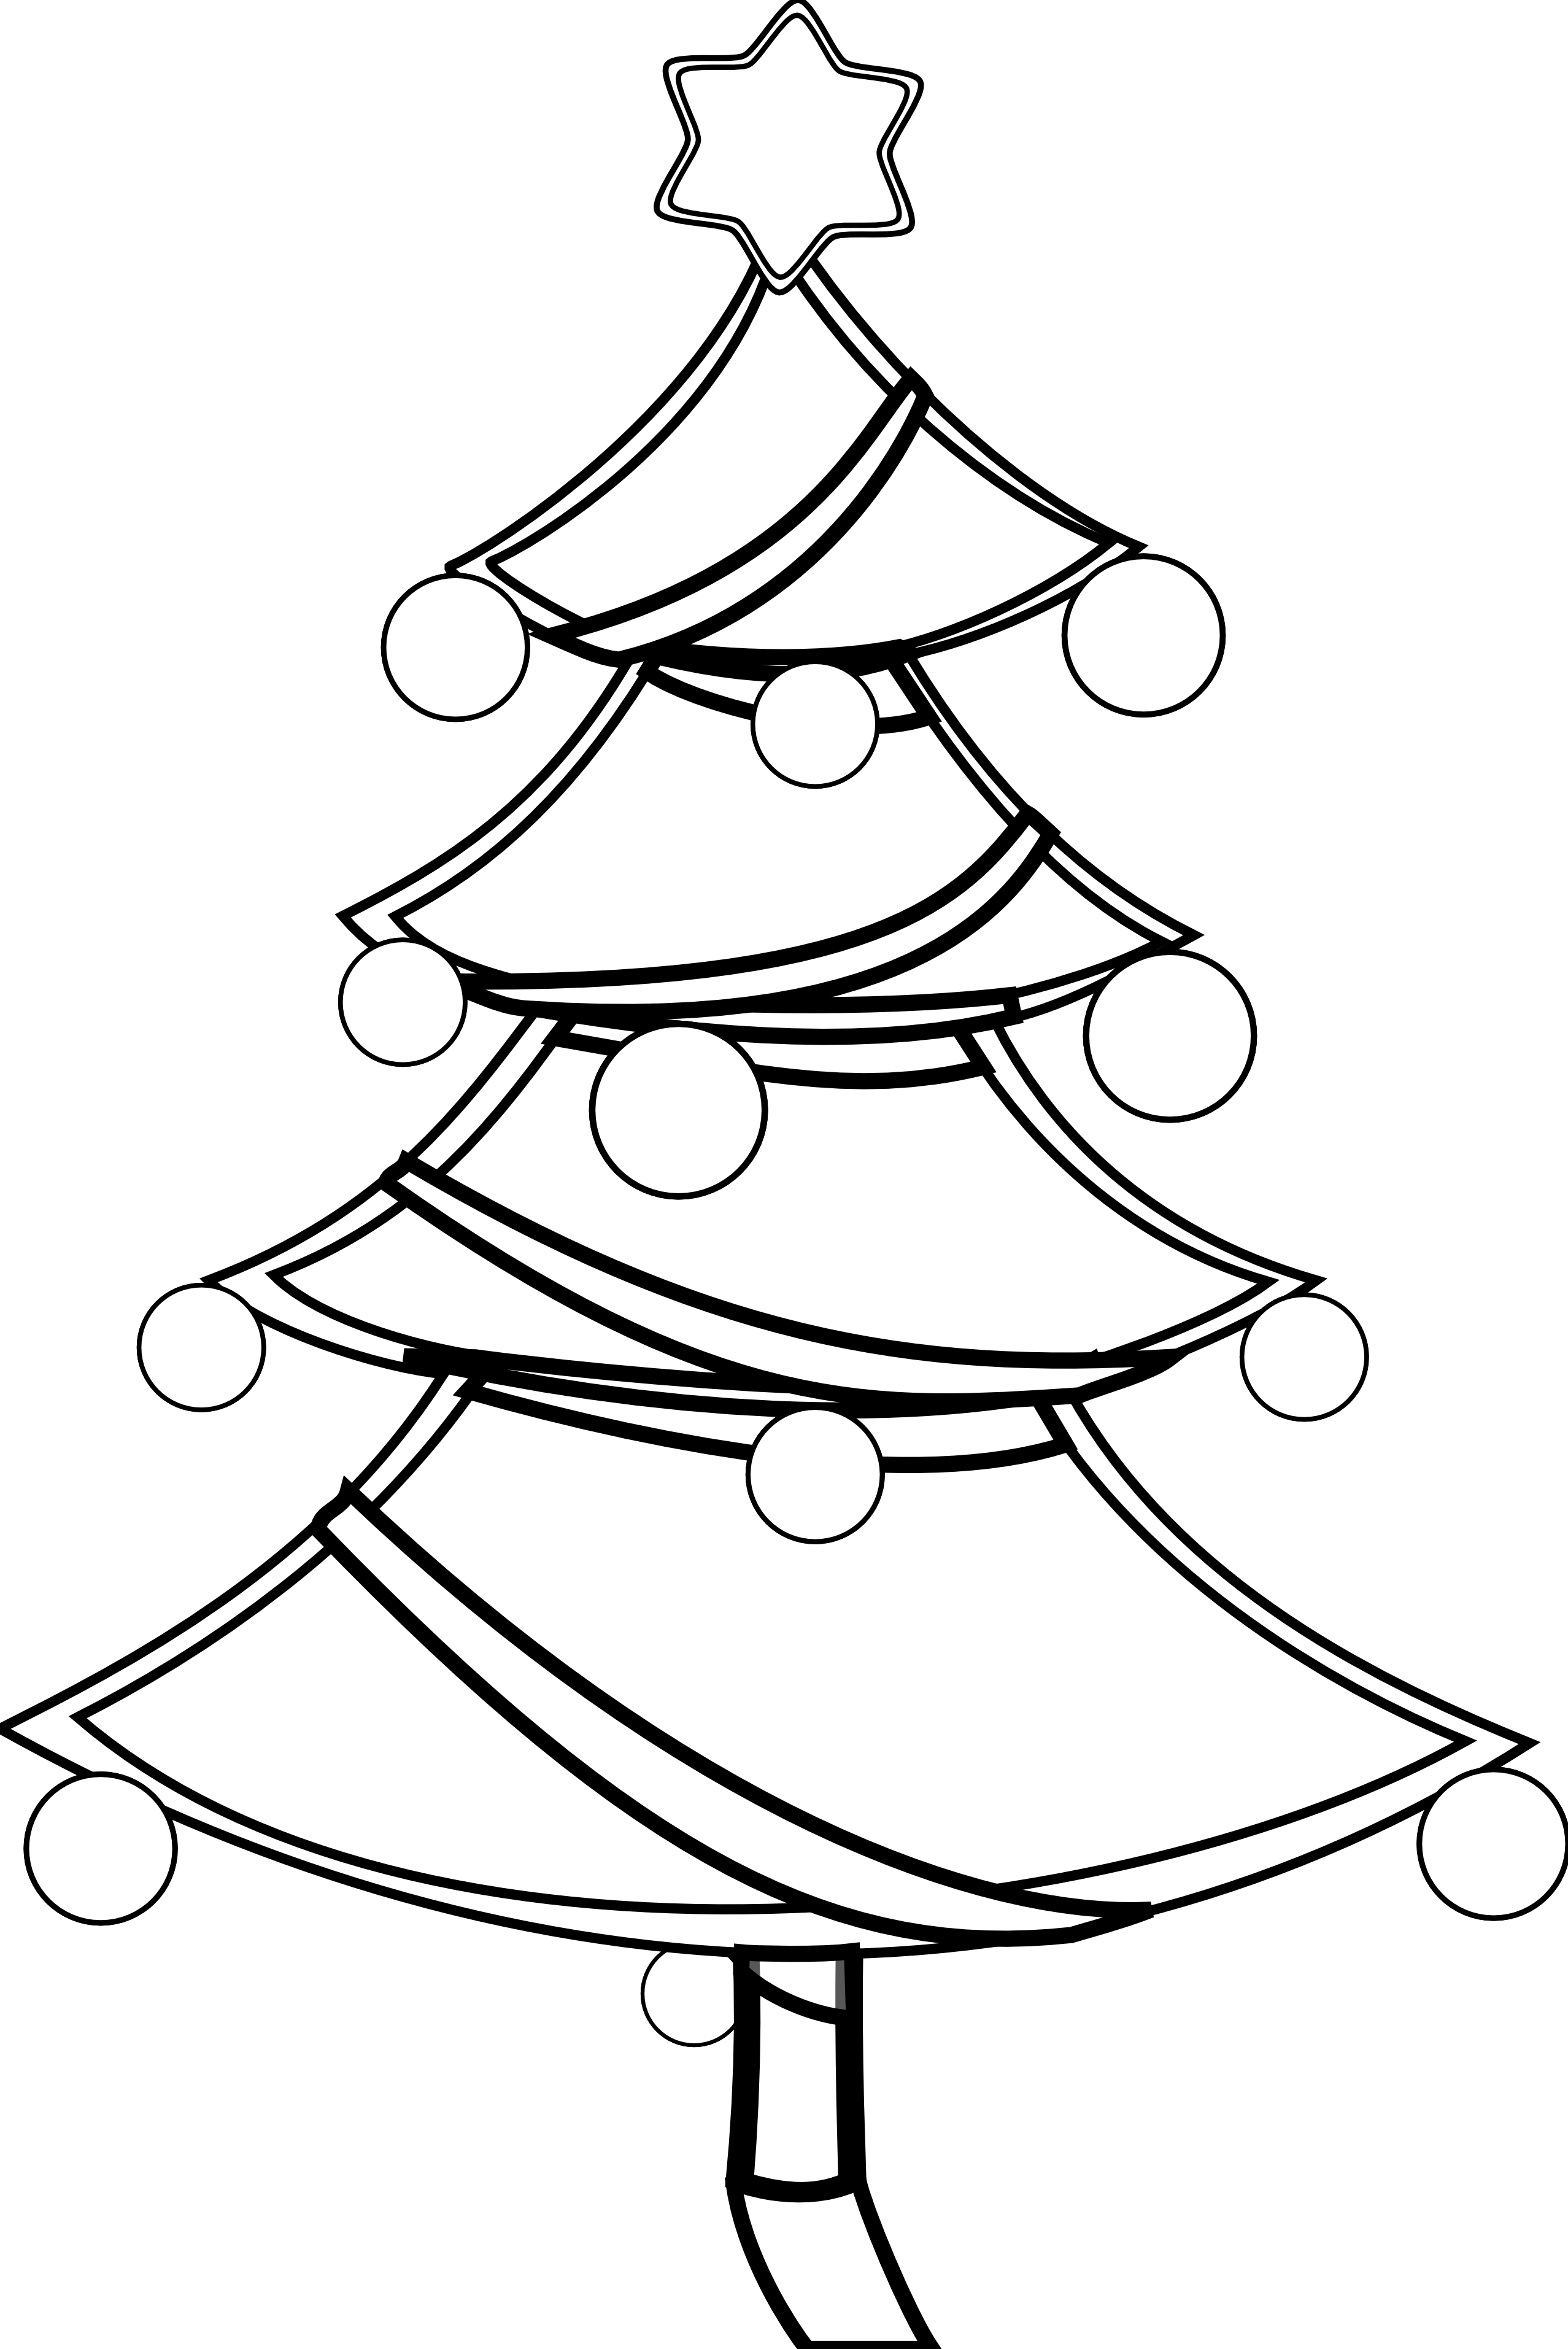 Black And White Christmas Tree Clip Art - Cliparts.co